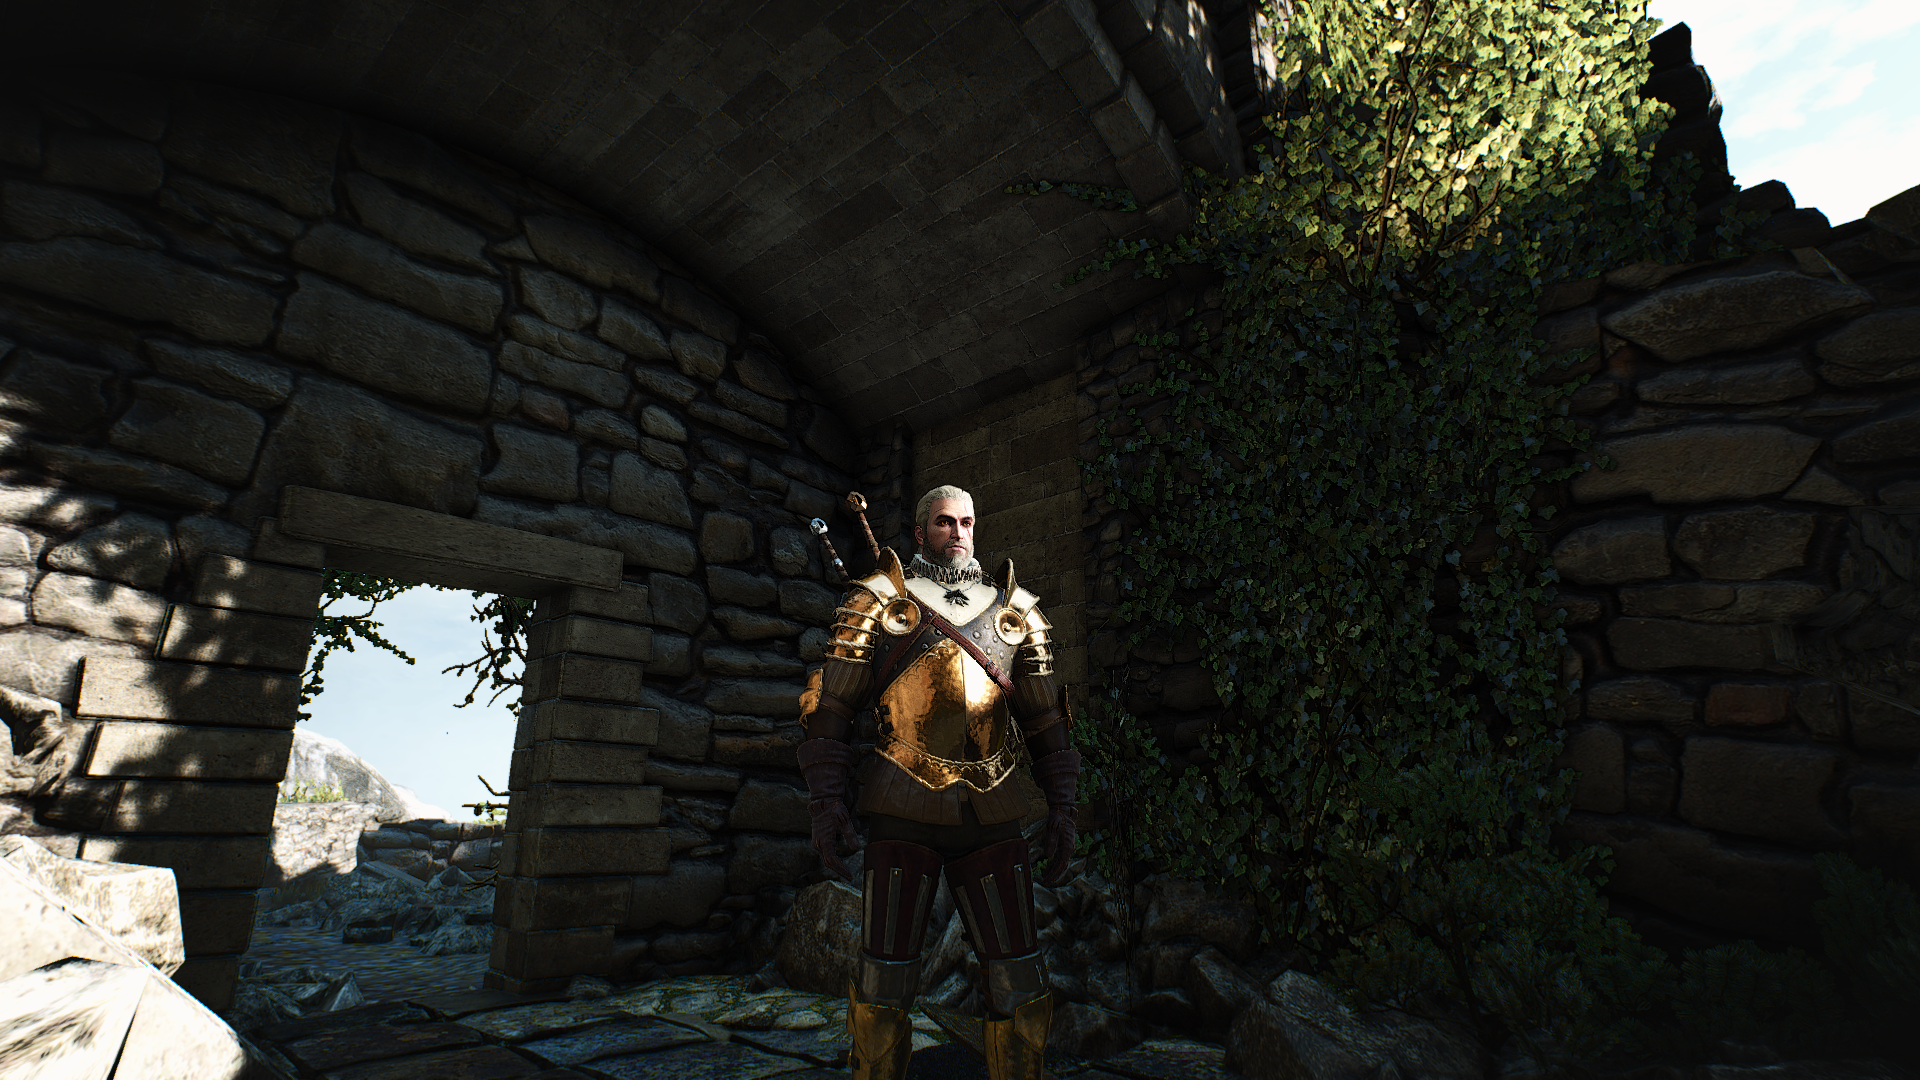 The Witcher 3 15.10.2018 22_49_42.png - Witcher 3: Wild Hunt, the